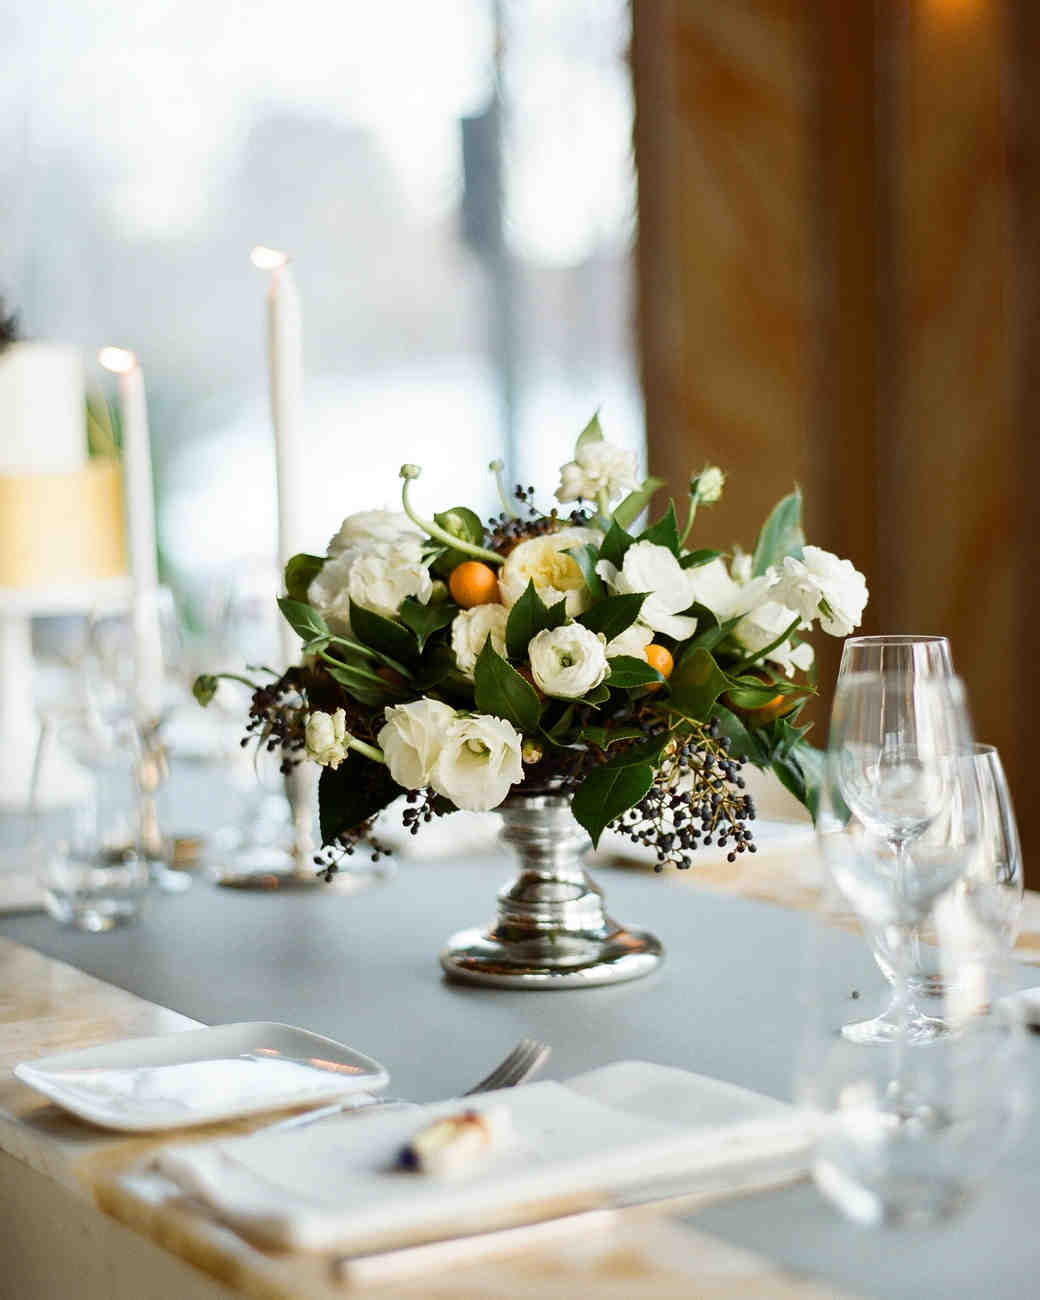 Flowers For Wedding Table Centerpieces: 23 Totally Chic Vintage Centerpieces